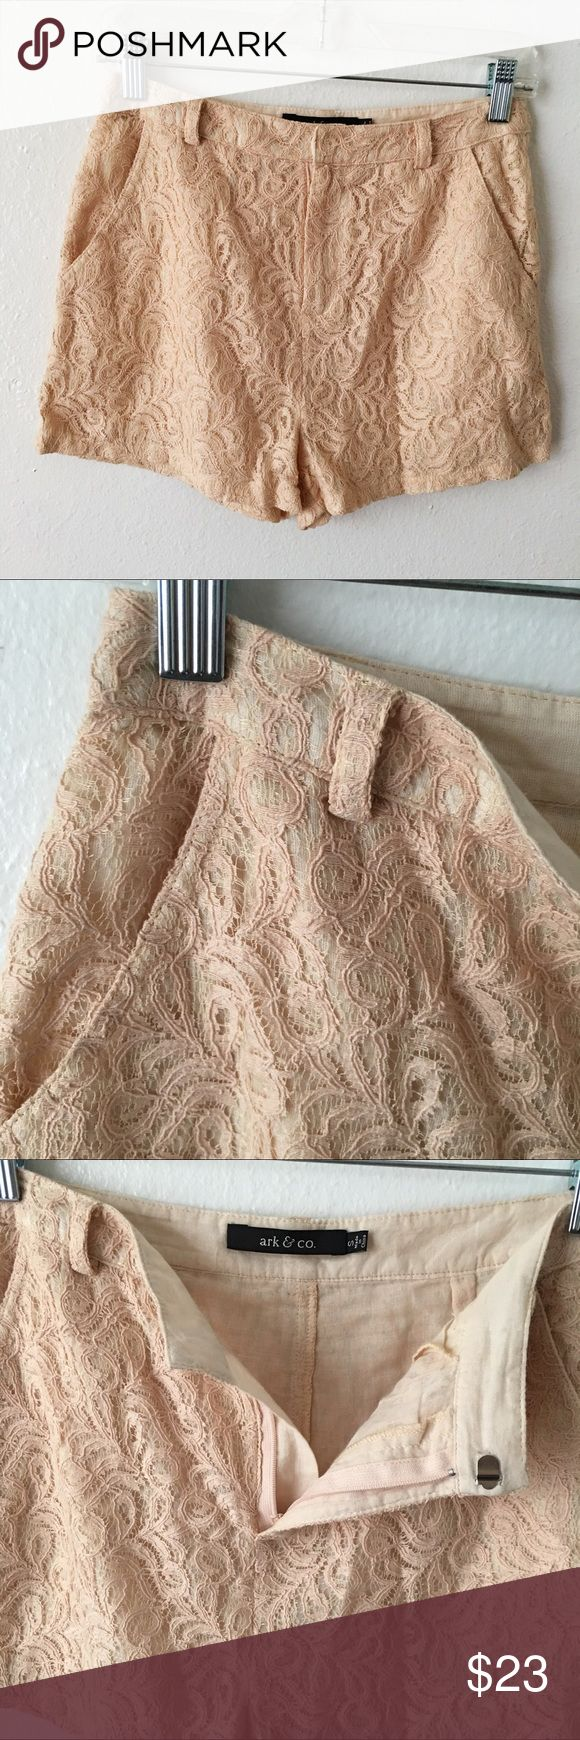 Ark & Co Cream Lace Shorts Gorgeous lace shorts, only worn once or twice, excellent condition ❤️ no visible flaws. Inseam approx 5cm Ark & Co Shorts